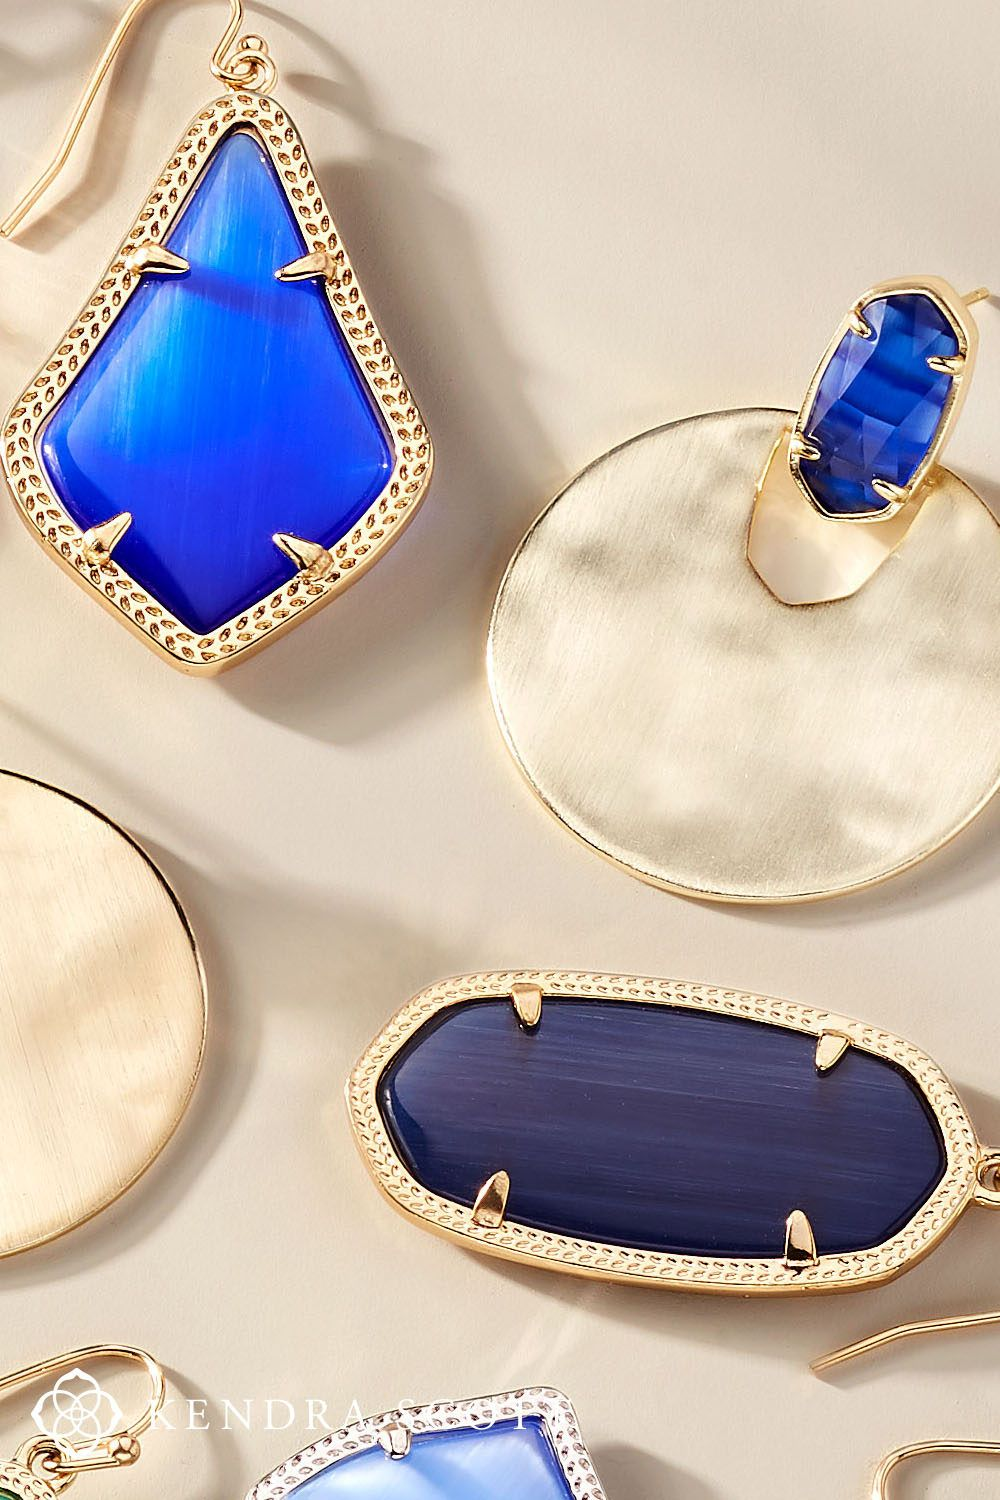 The Color Bar By Kendra Scott Is An In Store And Online Experience Where Personal Style Meets Instant Gratificati With Images Custom Jewelry How To Make Necklaces Jewelry